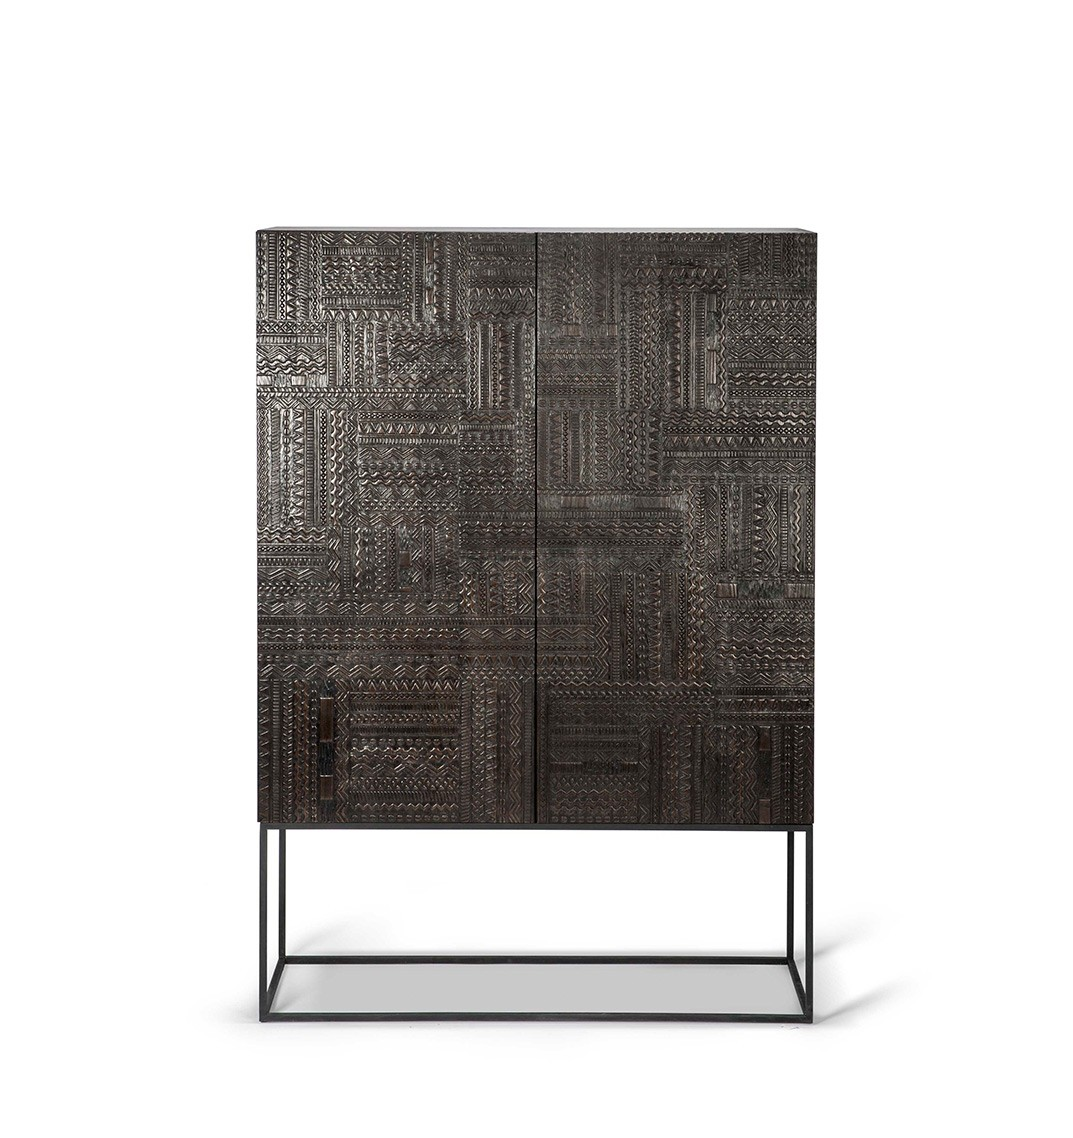 Ancestors by Ethnicraft Tabwa Sideboard High - 2 doors